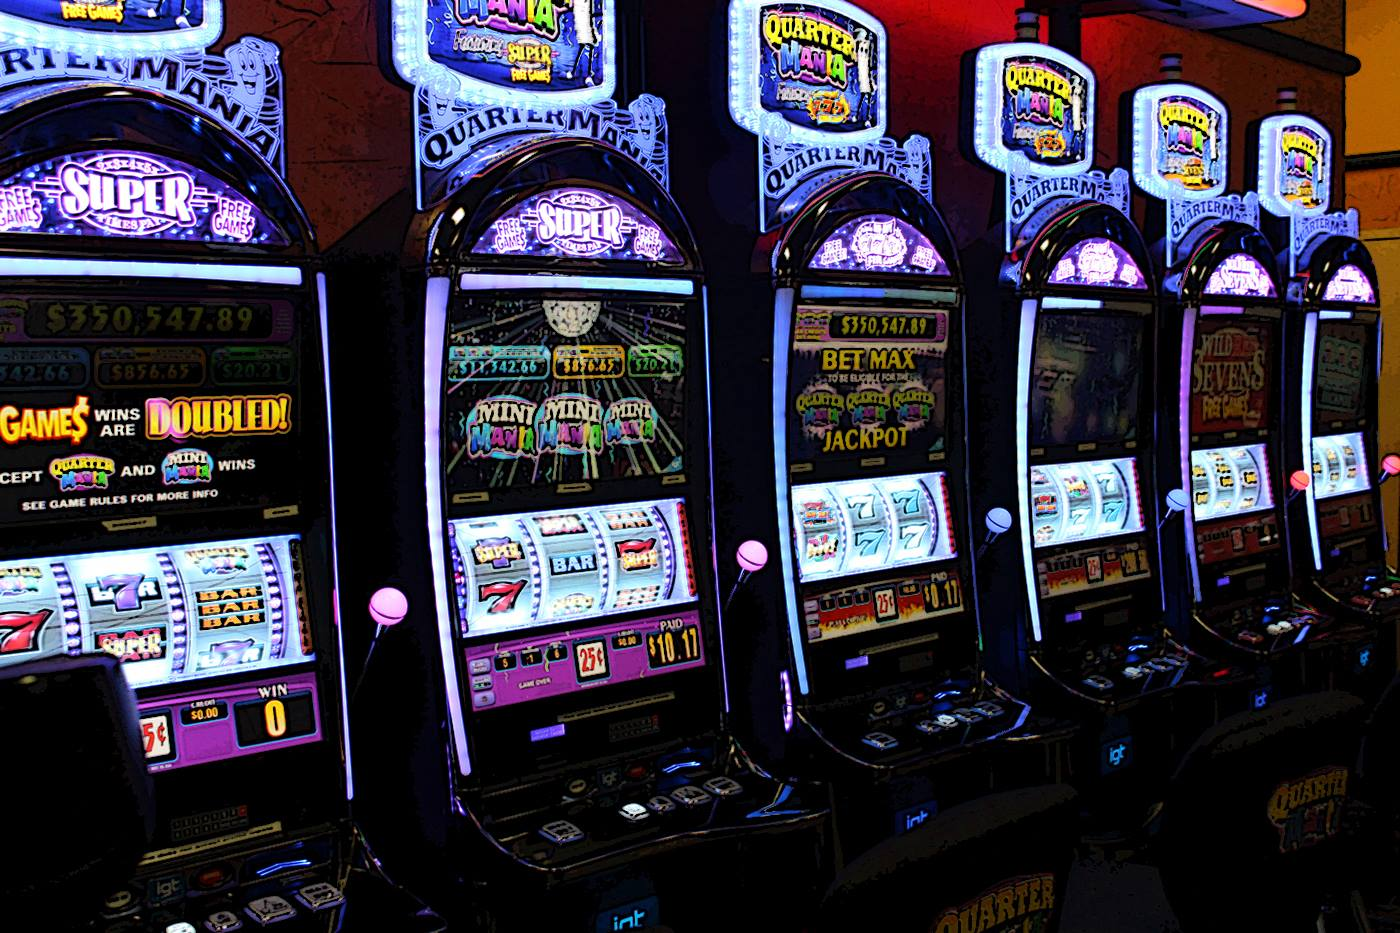 Cheyenne and Arapaho Tribes oust casino executives due to fraud